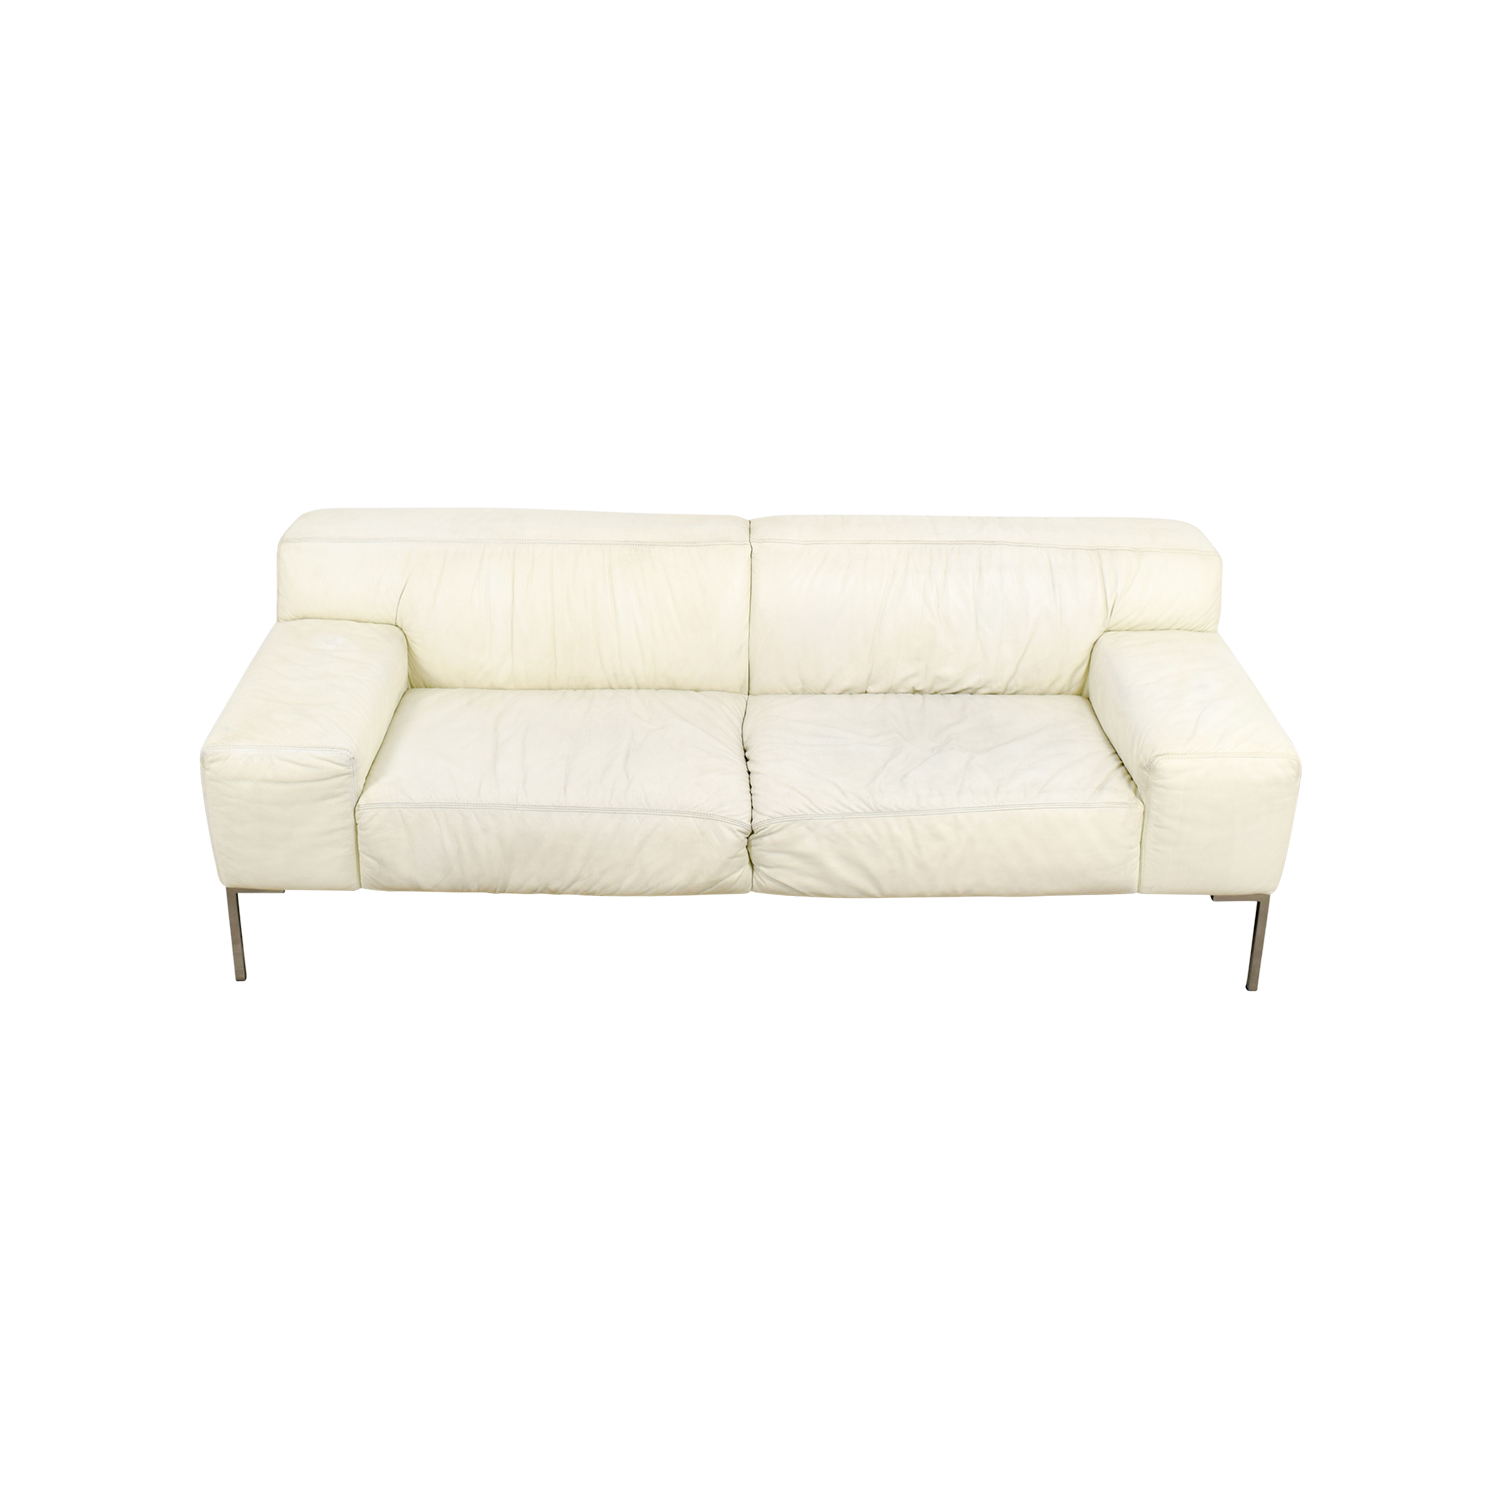 74% OFF Jensen Lewis Jensen Lewis American Leather Tuscan White